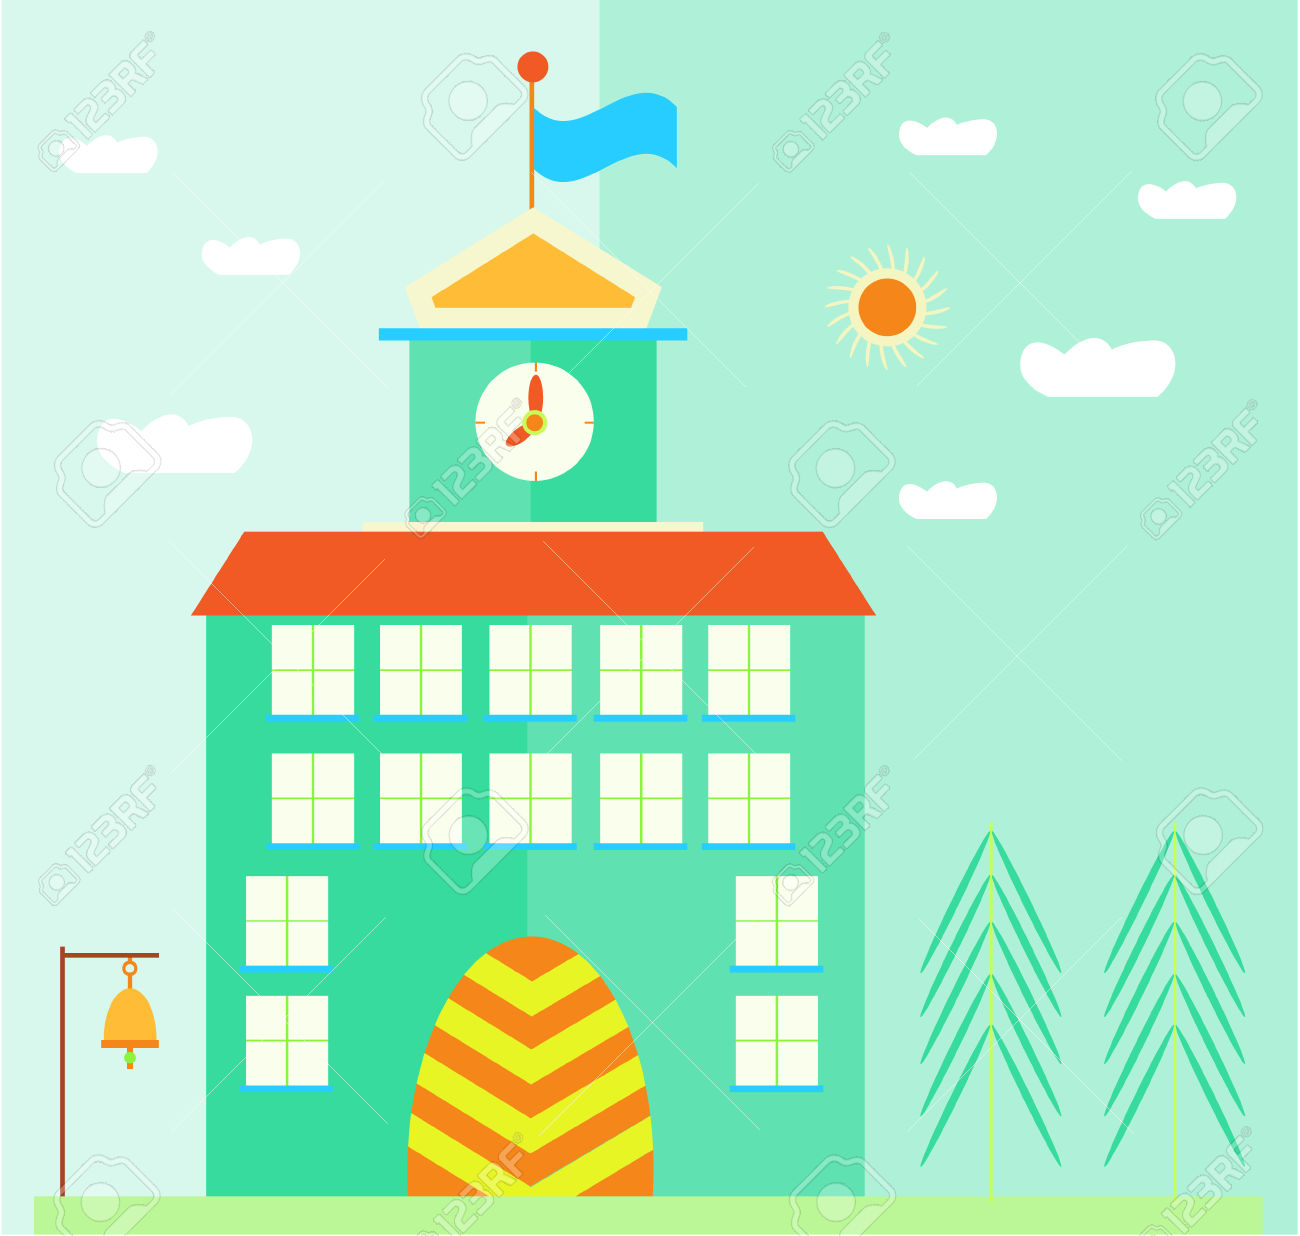 Green, School Building With Flag, Clock, Landscape With Sun.